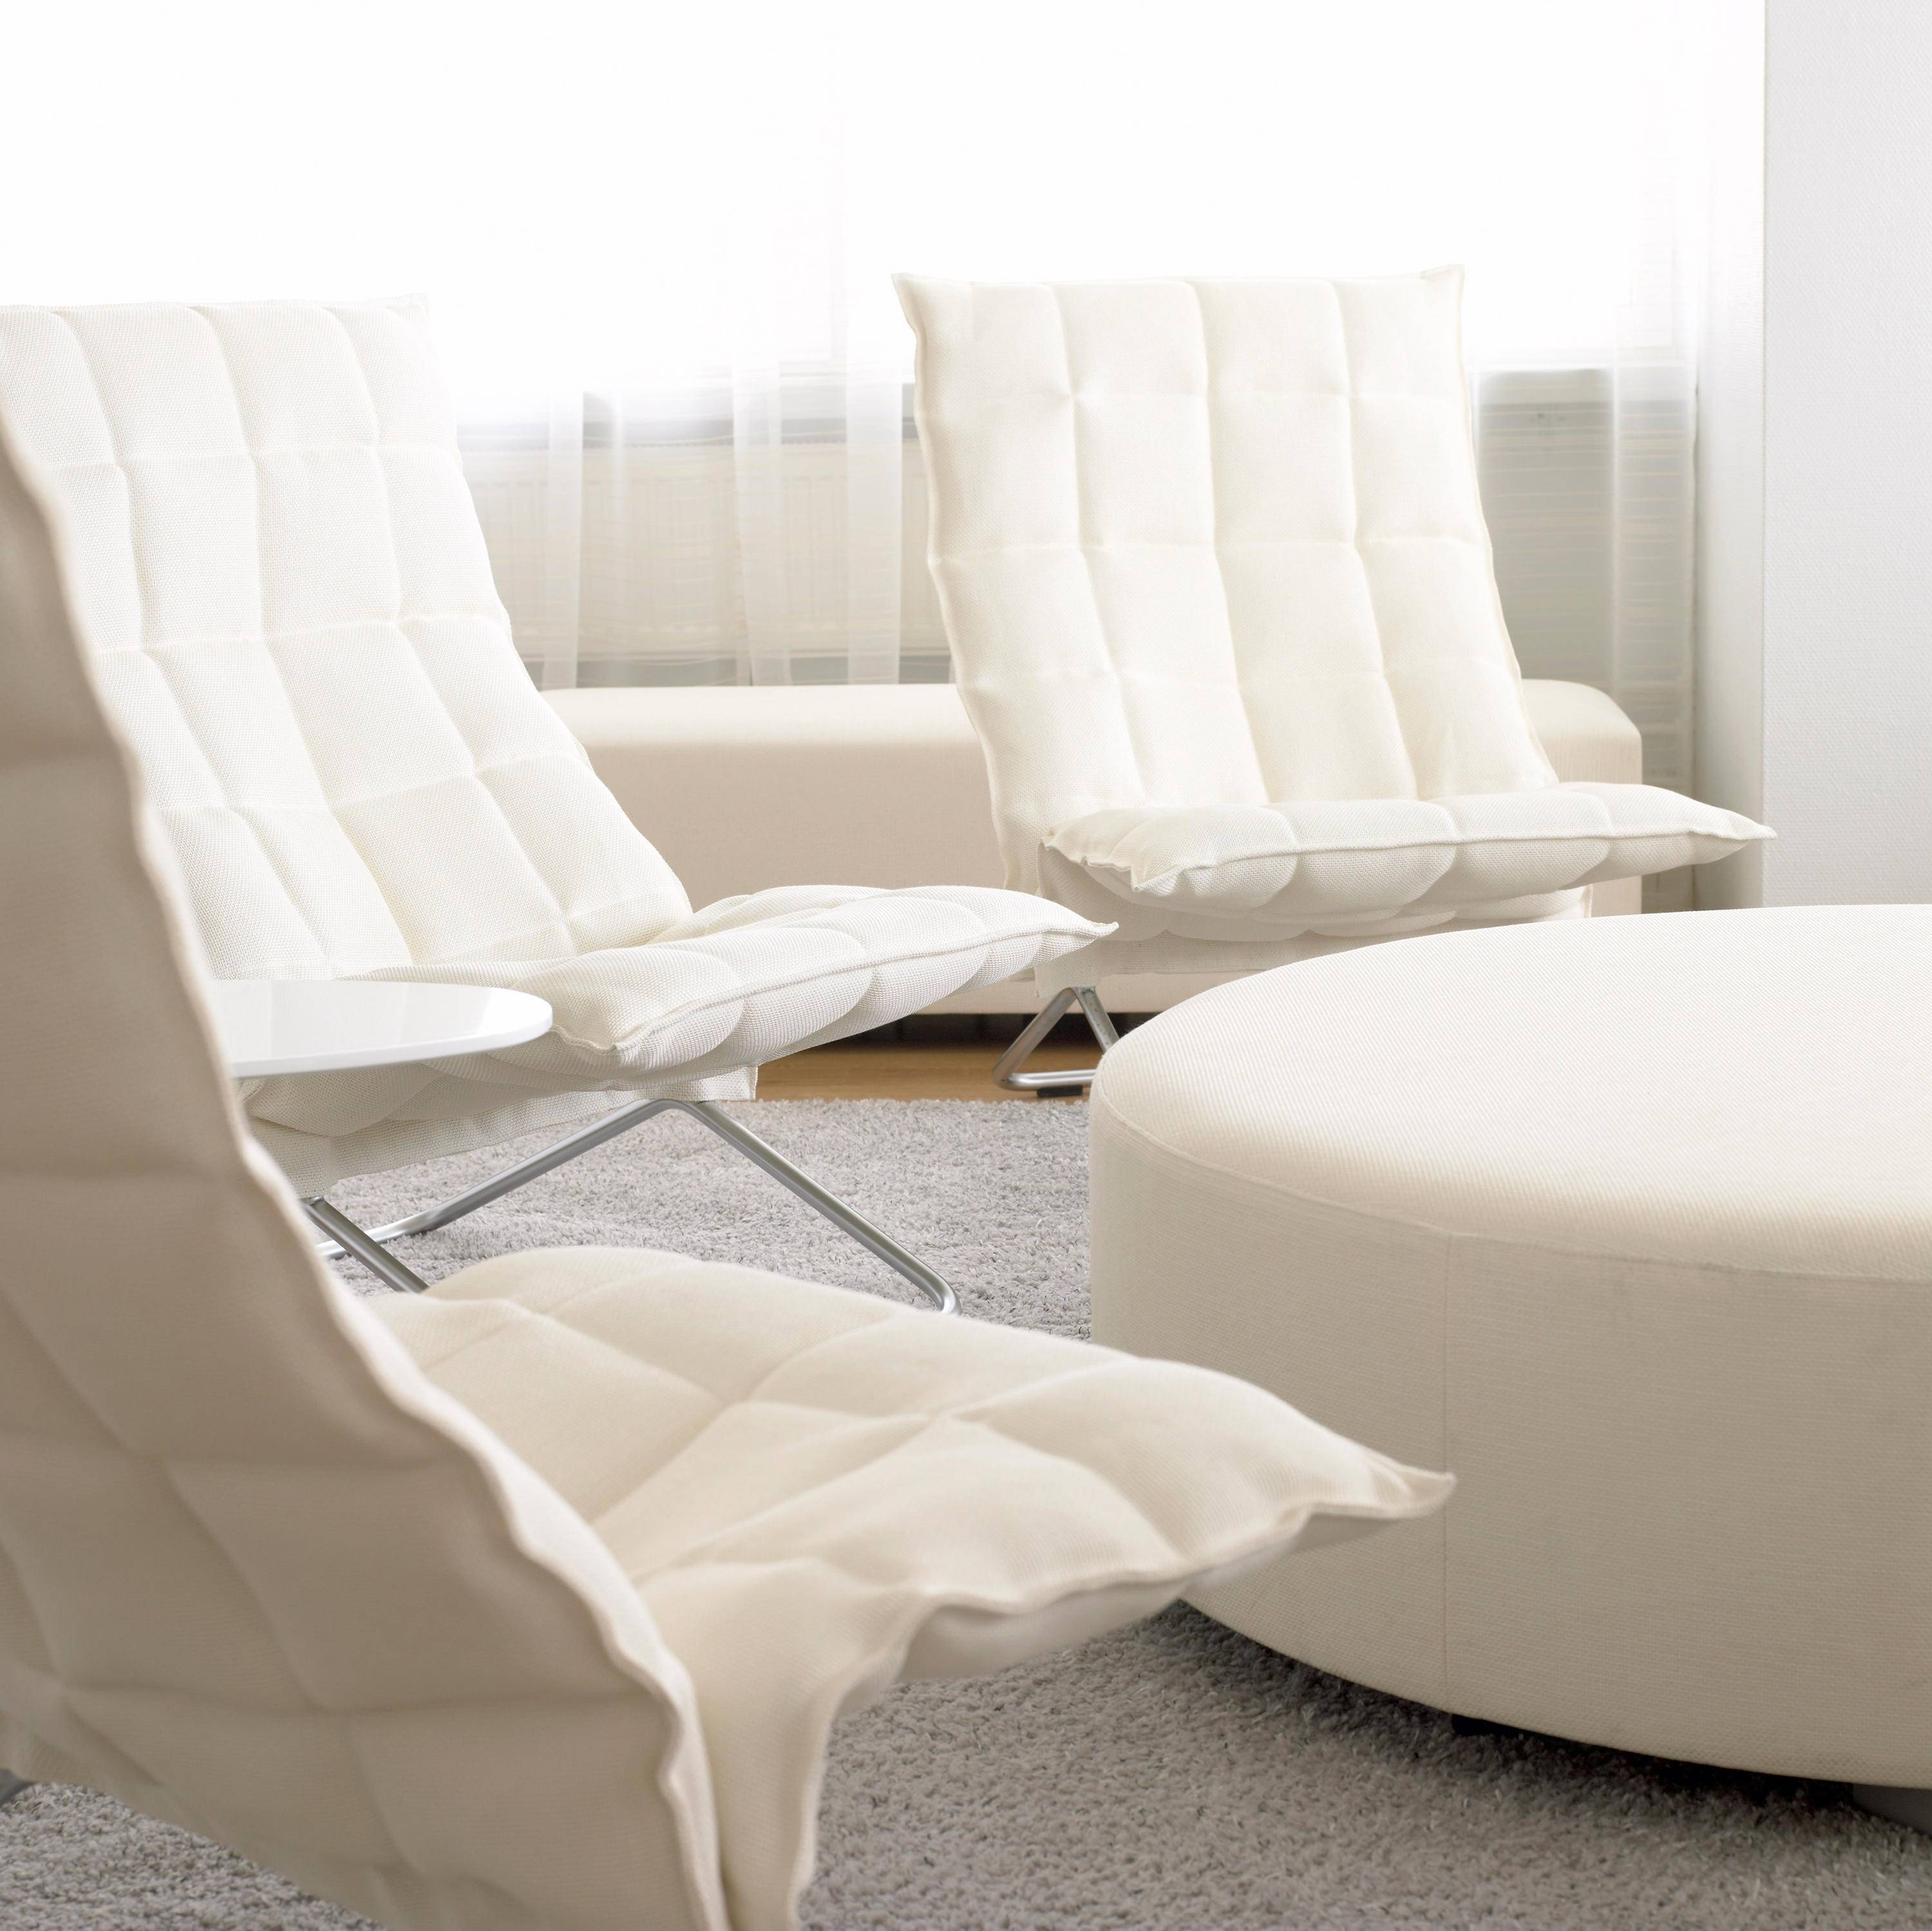 K Chair | Narrow | Swivel - Armchairs From Woodnotes | Architonic in Narrow Armchairs (Image 16 of 30)